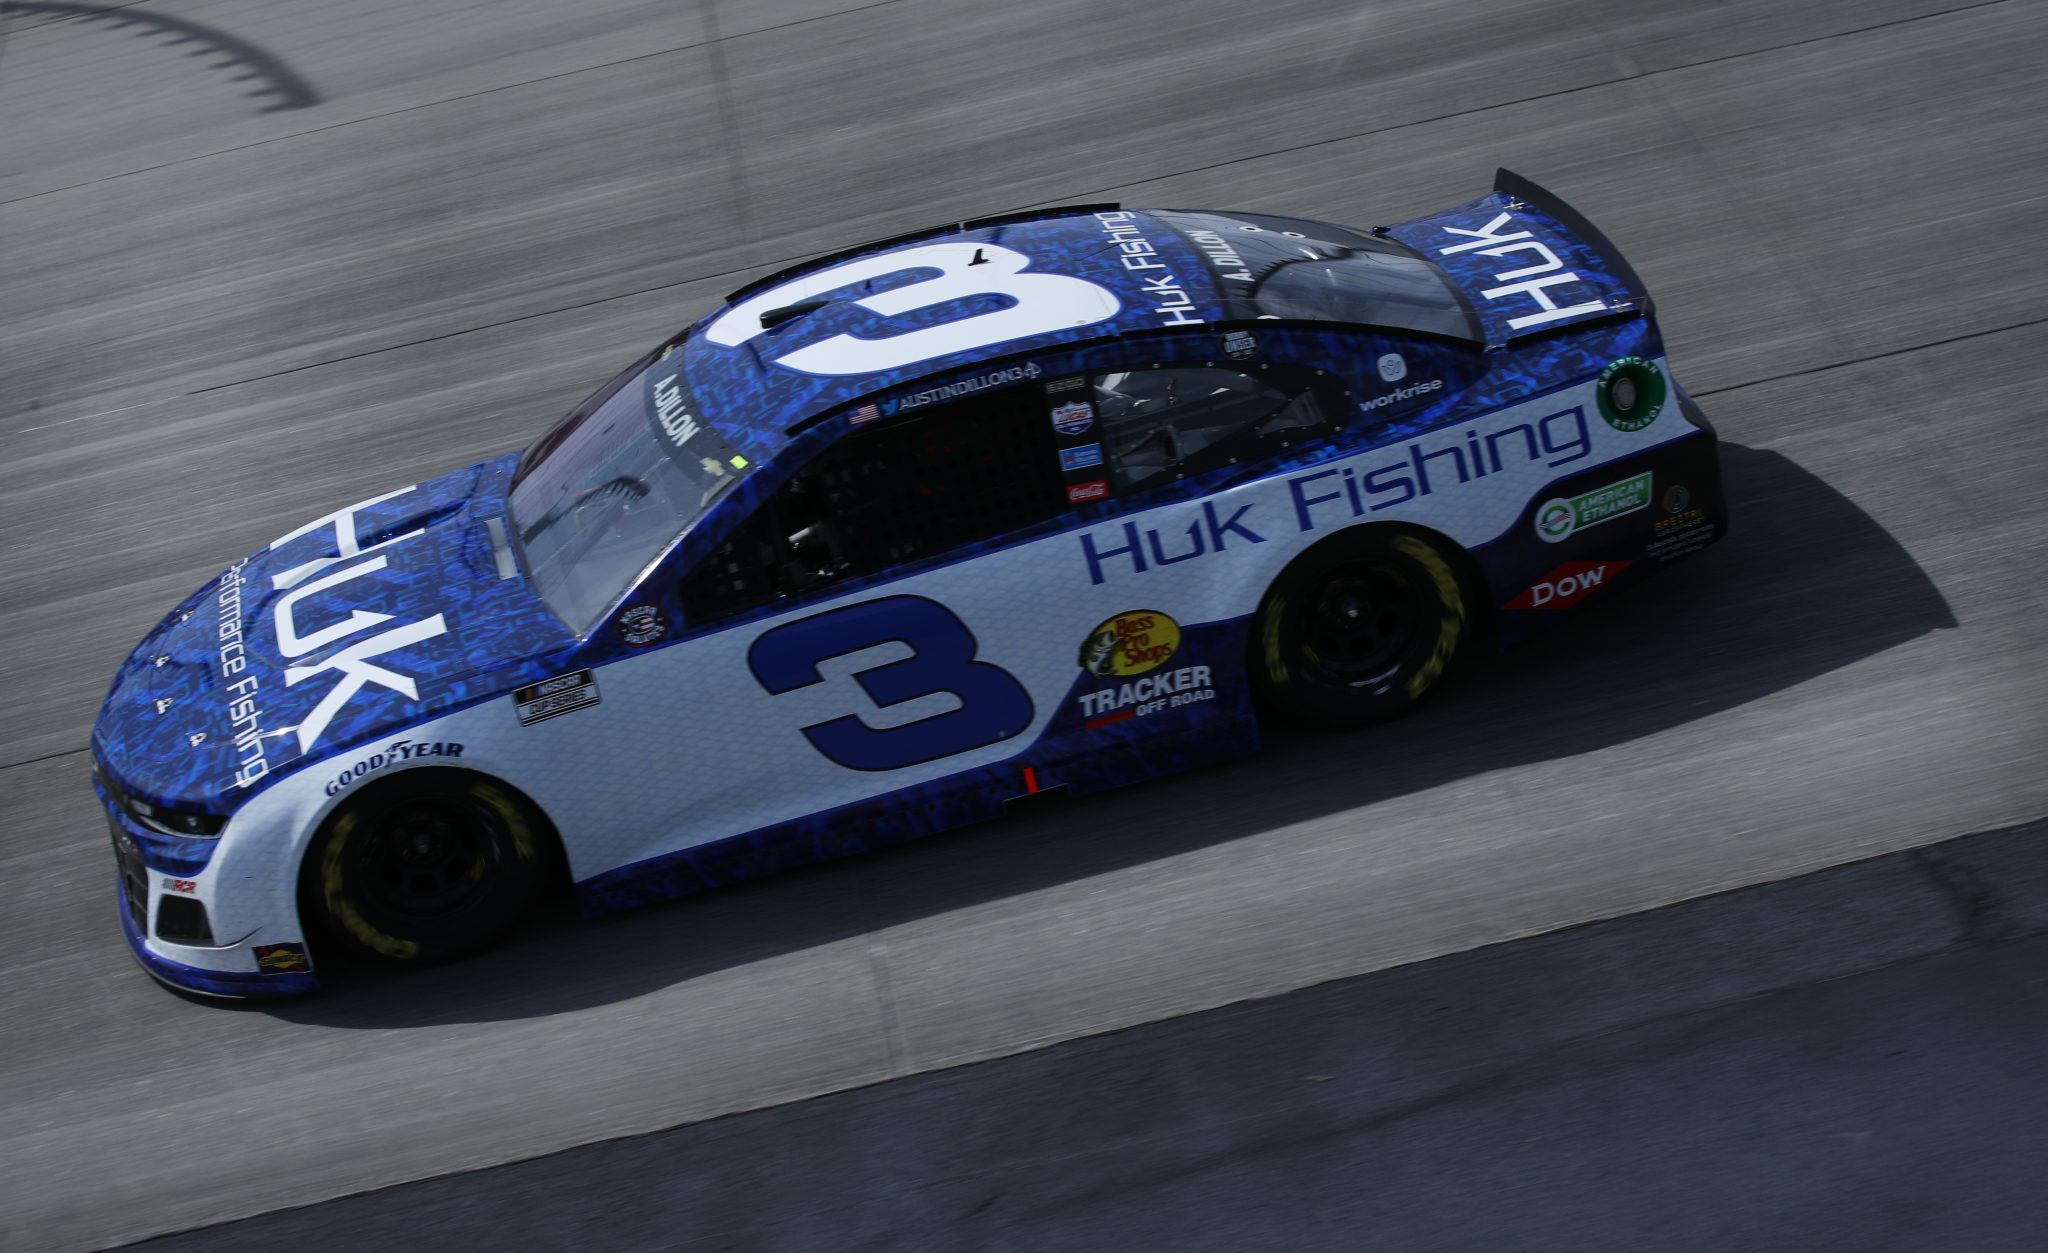 DOVER, DELAWARE - MAY 16: Austin Dillon, driver of the #3 Huk Performance Fishing Chevrolet, races during the NASCAR Cup Series Drydene 400 at Dover International Speedway on May 16, 2021 in Dover, Delaware. (Photo by Sean Gardner/Getty Images) | Getty Images